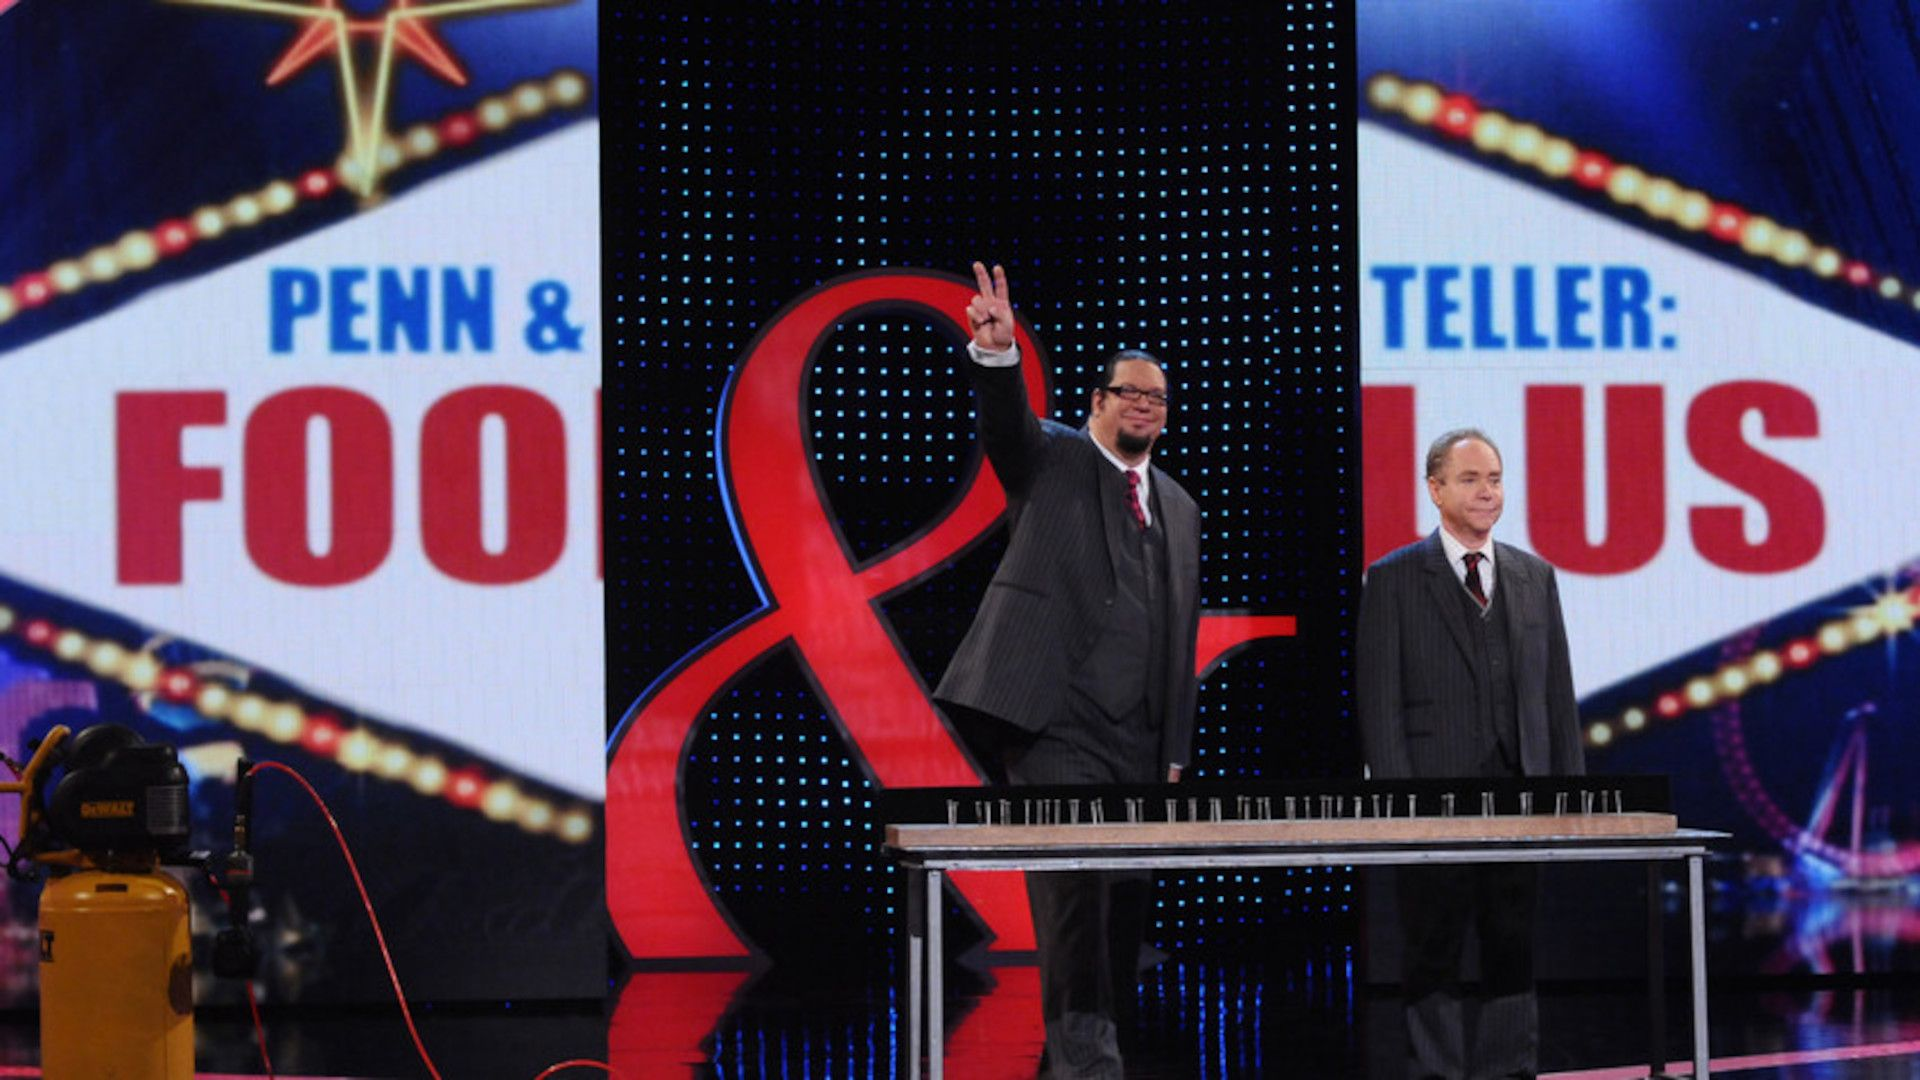 Photo for Penn & Teller: Fool Us